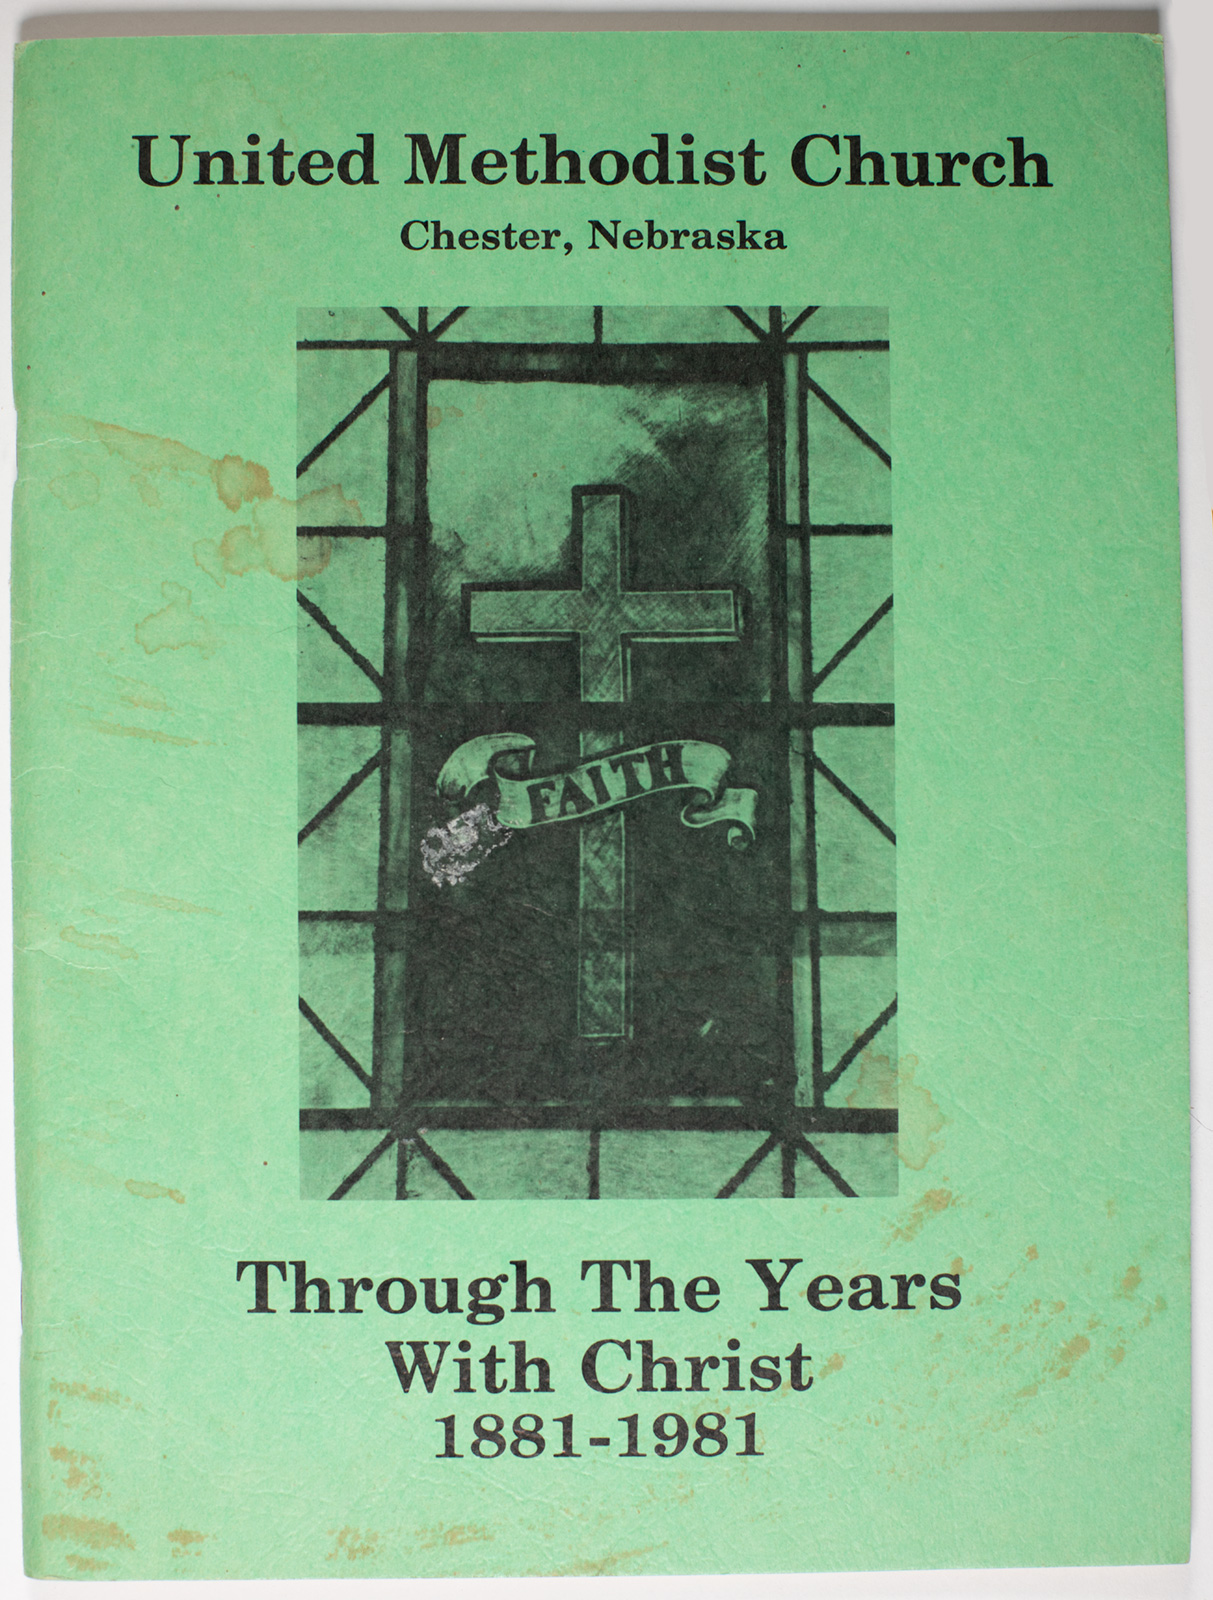 UMC - Through the Years with Christ Book Image